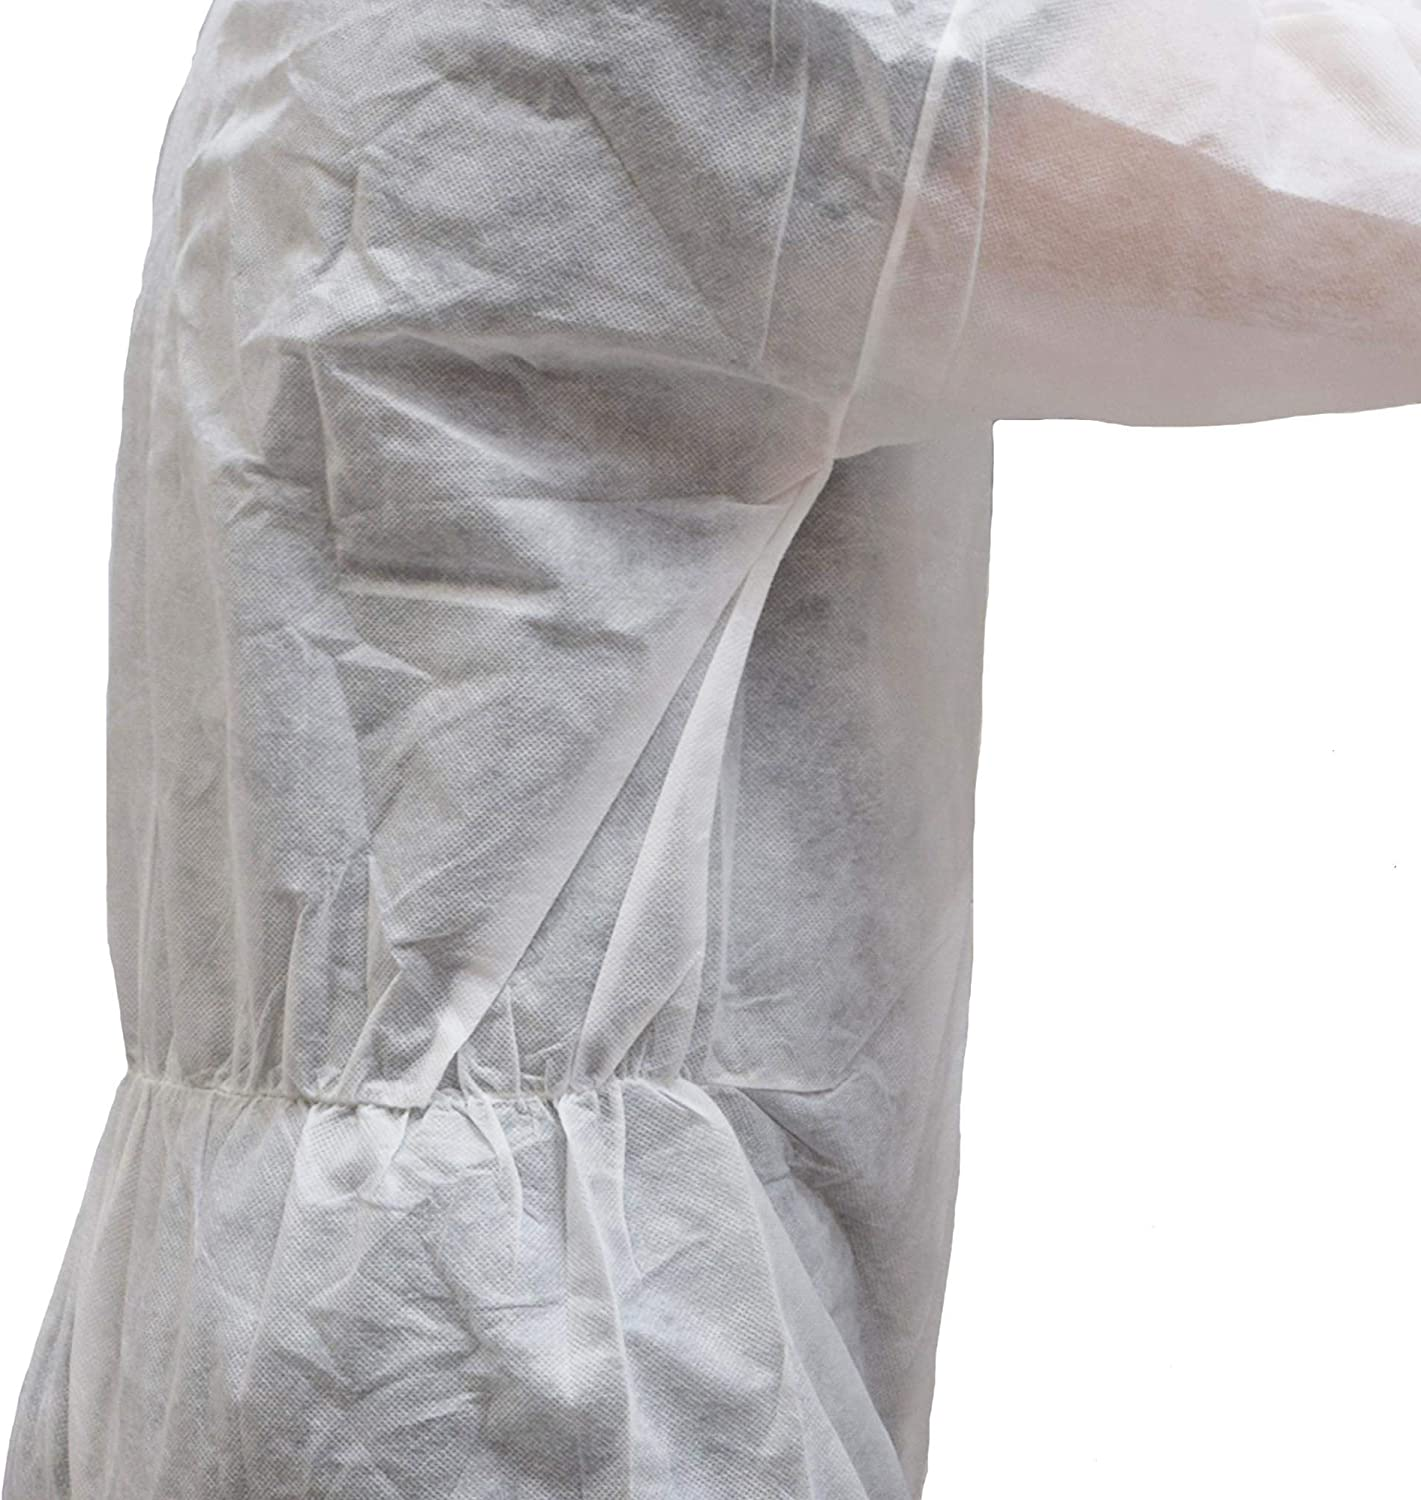 Polypropylene Ex-Pro Disposable Protective Overall Coverall Suit Light Duty White